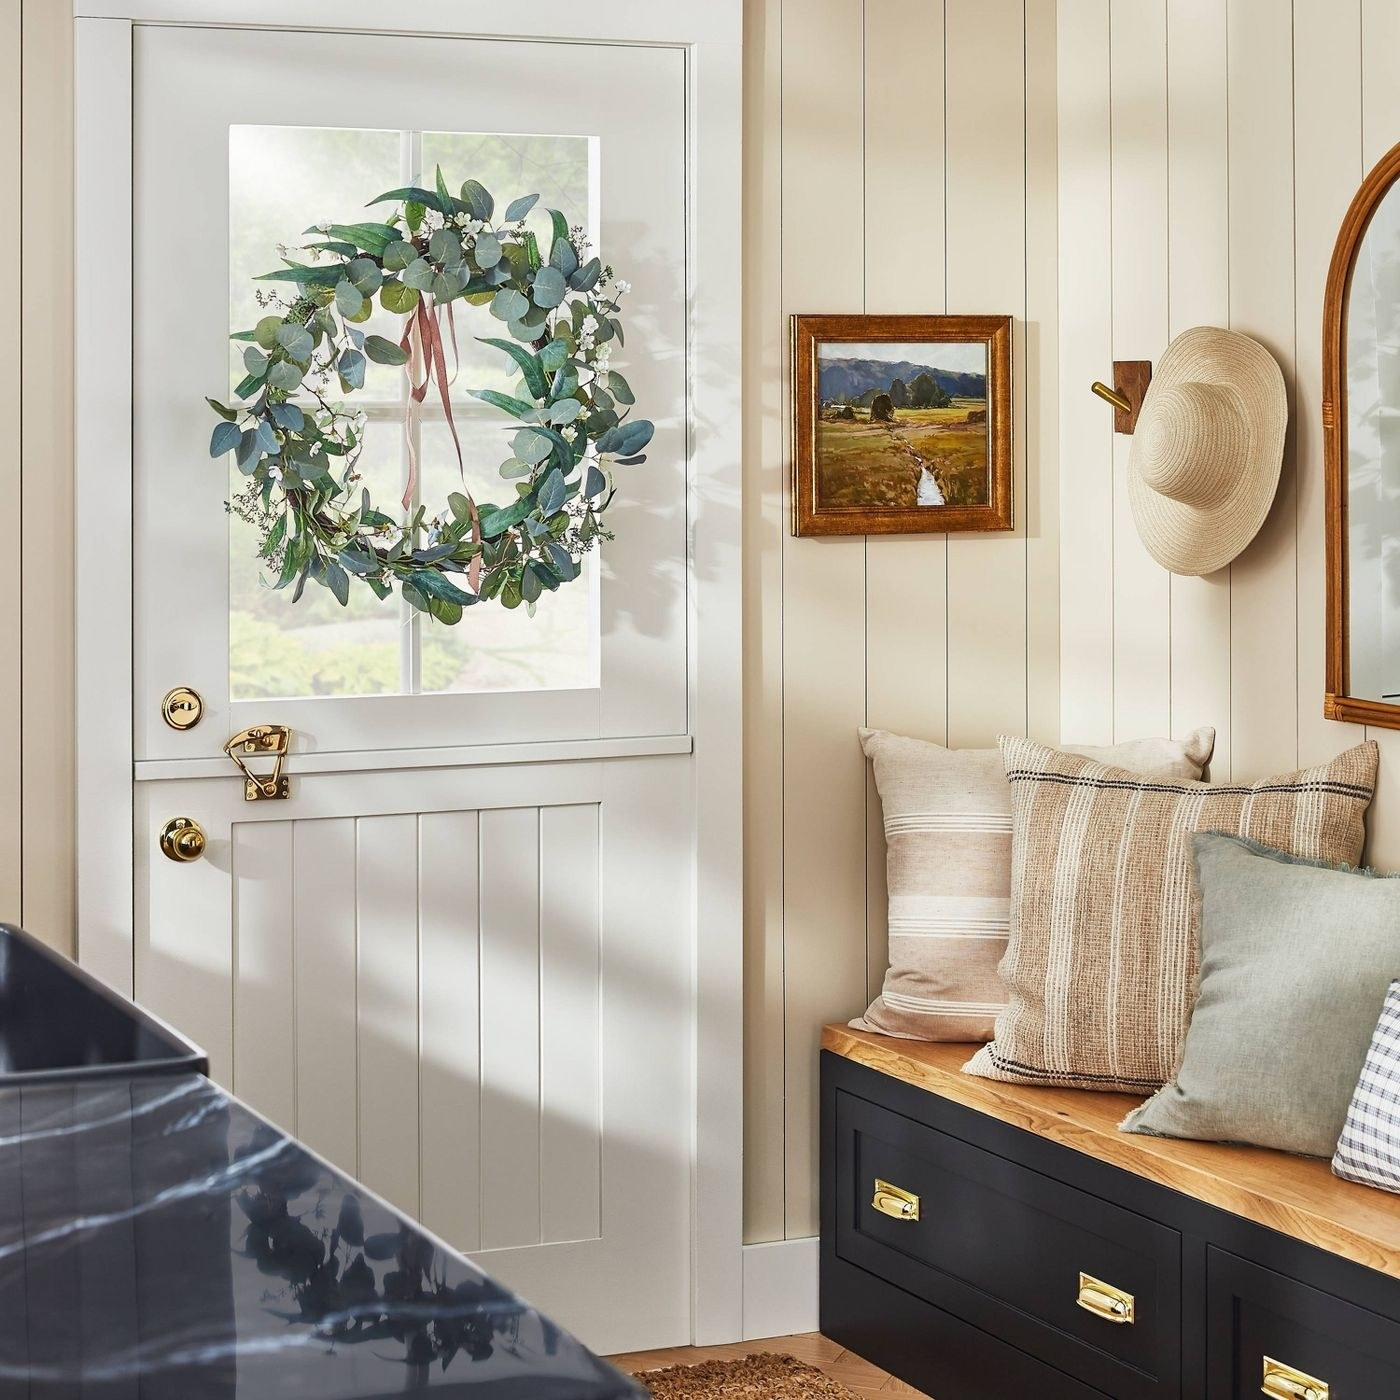 A wreath hung up in a home